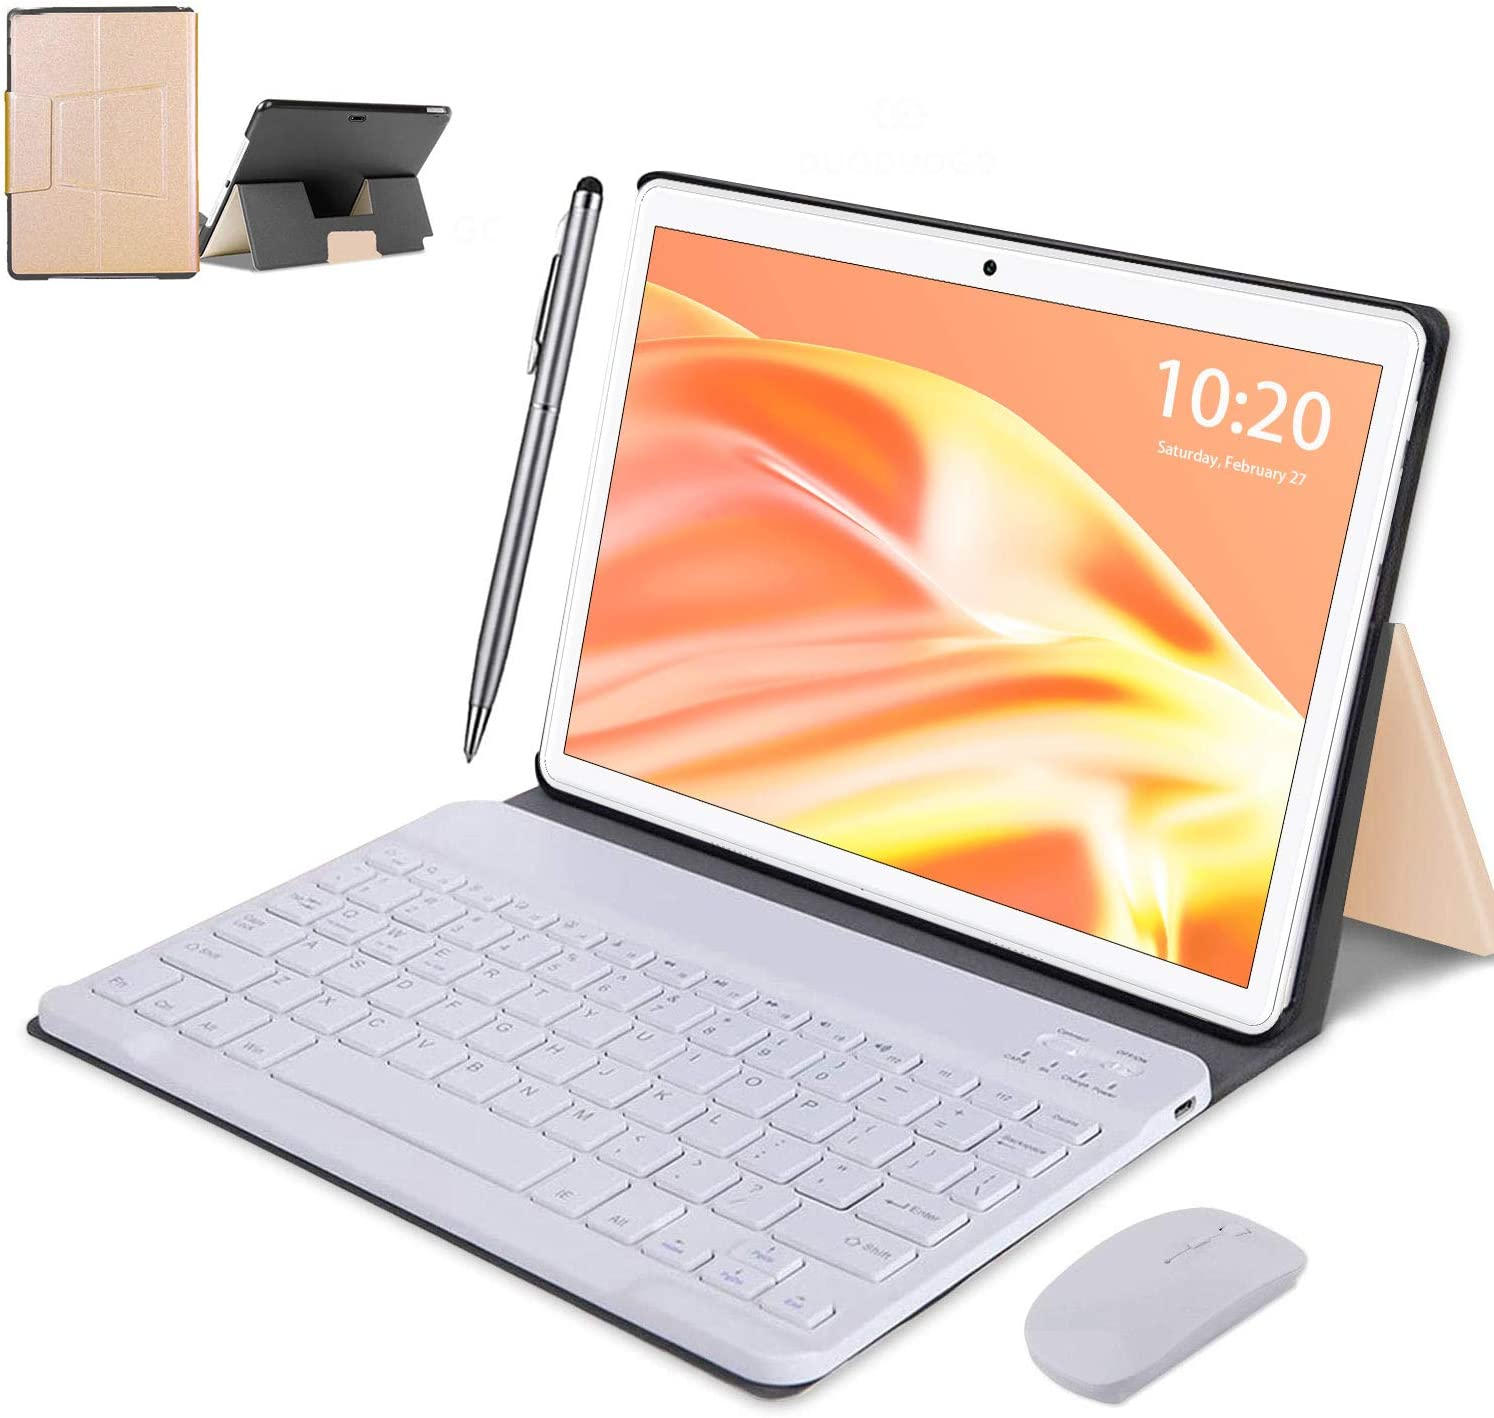 2 in 1 4 years warranty Tablet 10 Inch Android Max 75% OFF RAM 64GB ROM Tablets 4GB Tab